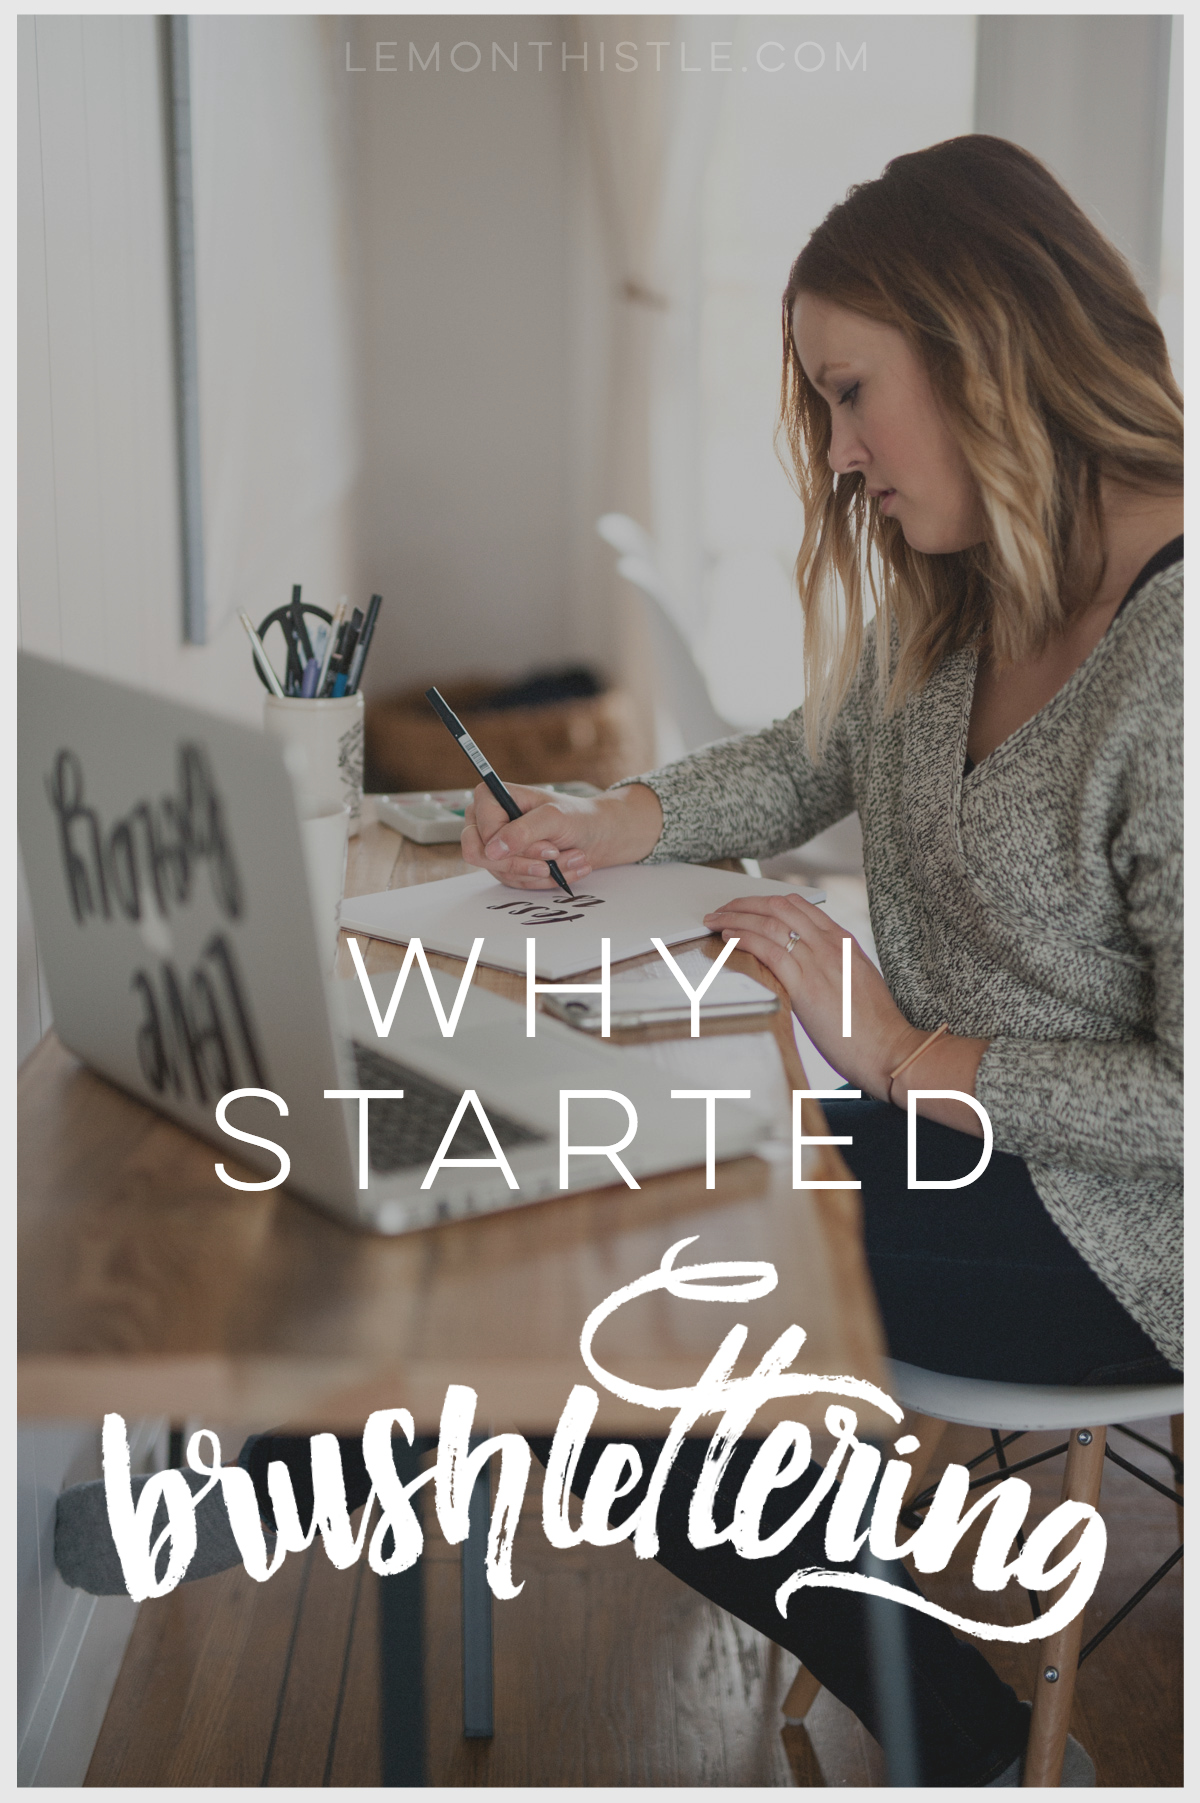 I love this! Awesome story on progress. I want to learn brush lettering too.